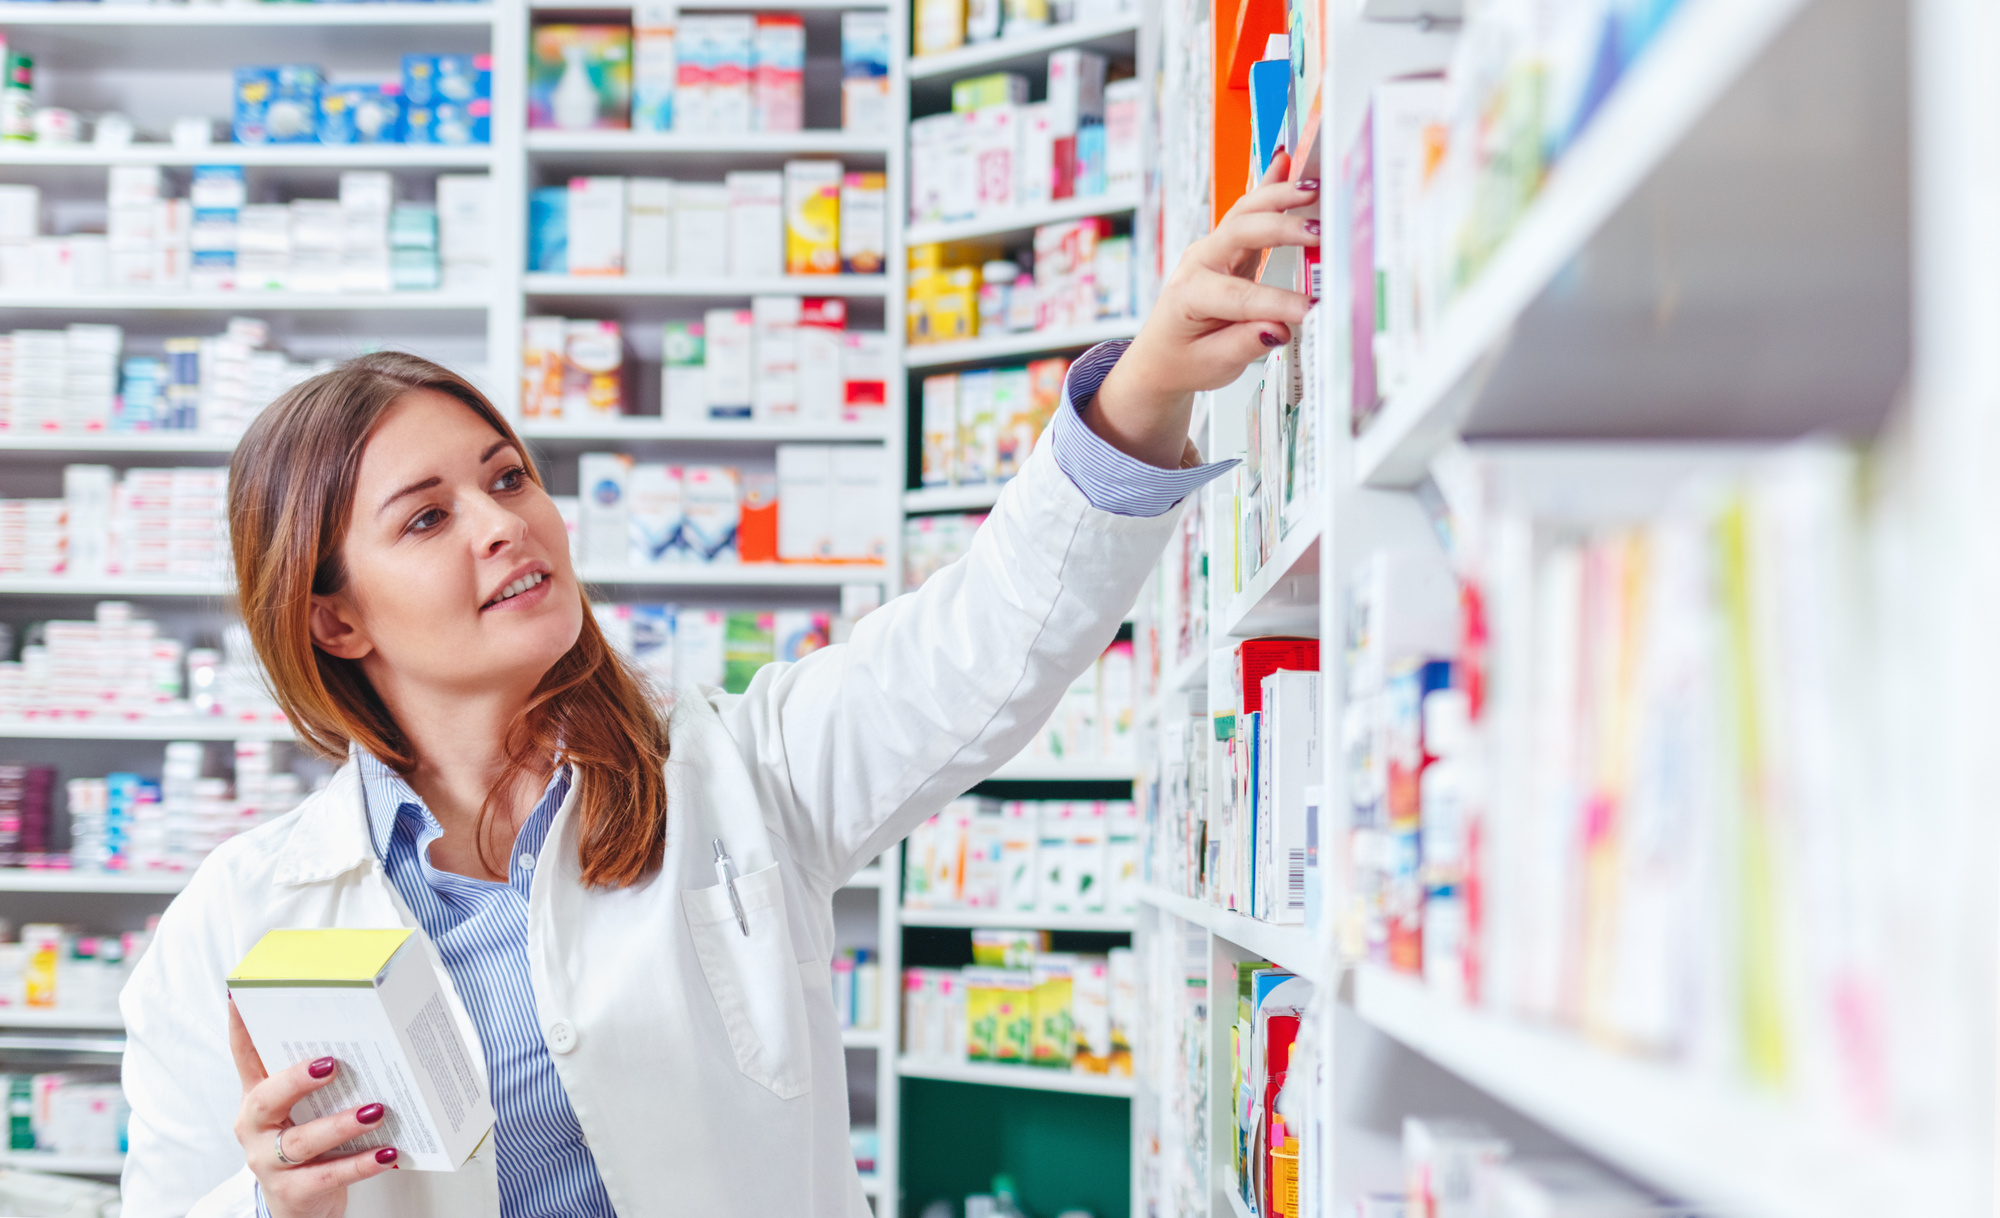 7 Innovations in Pharmacy Tech That Will Have the World Living a Little Healthier